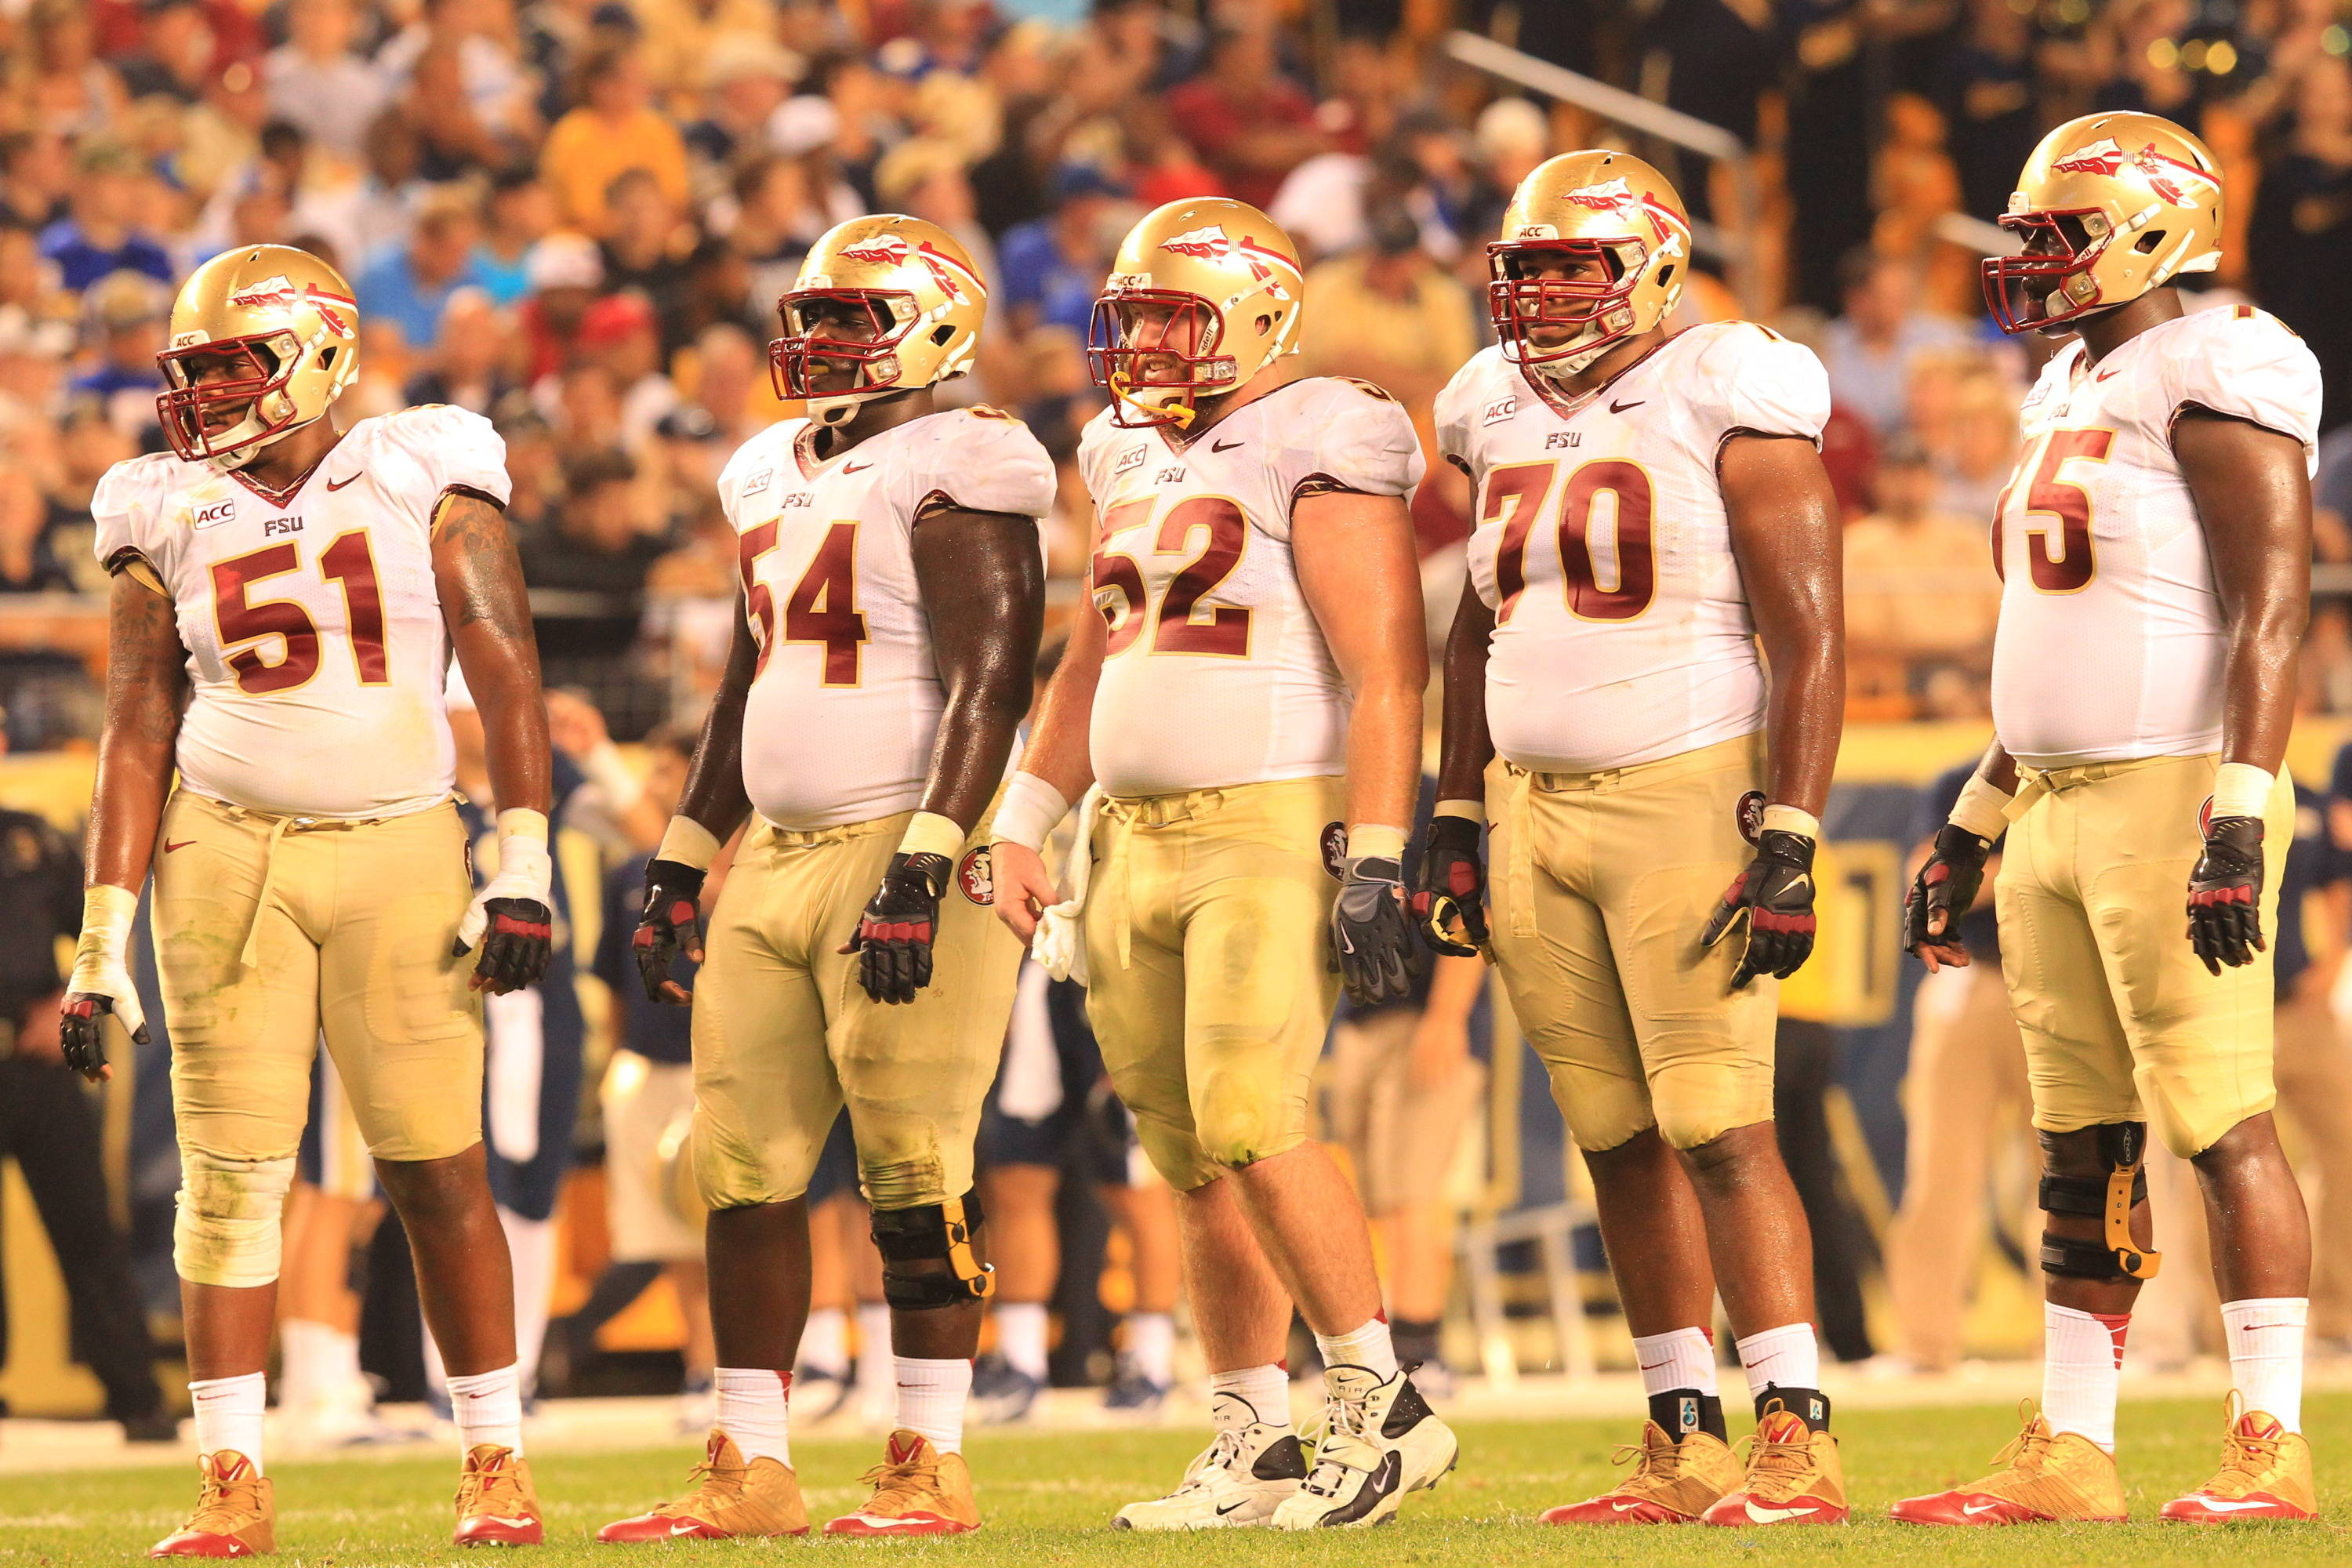 The Offensive Line